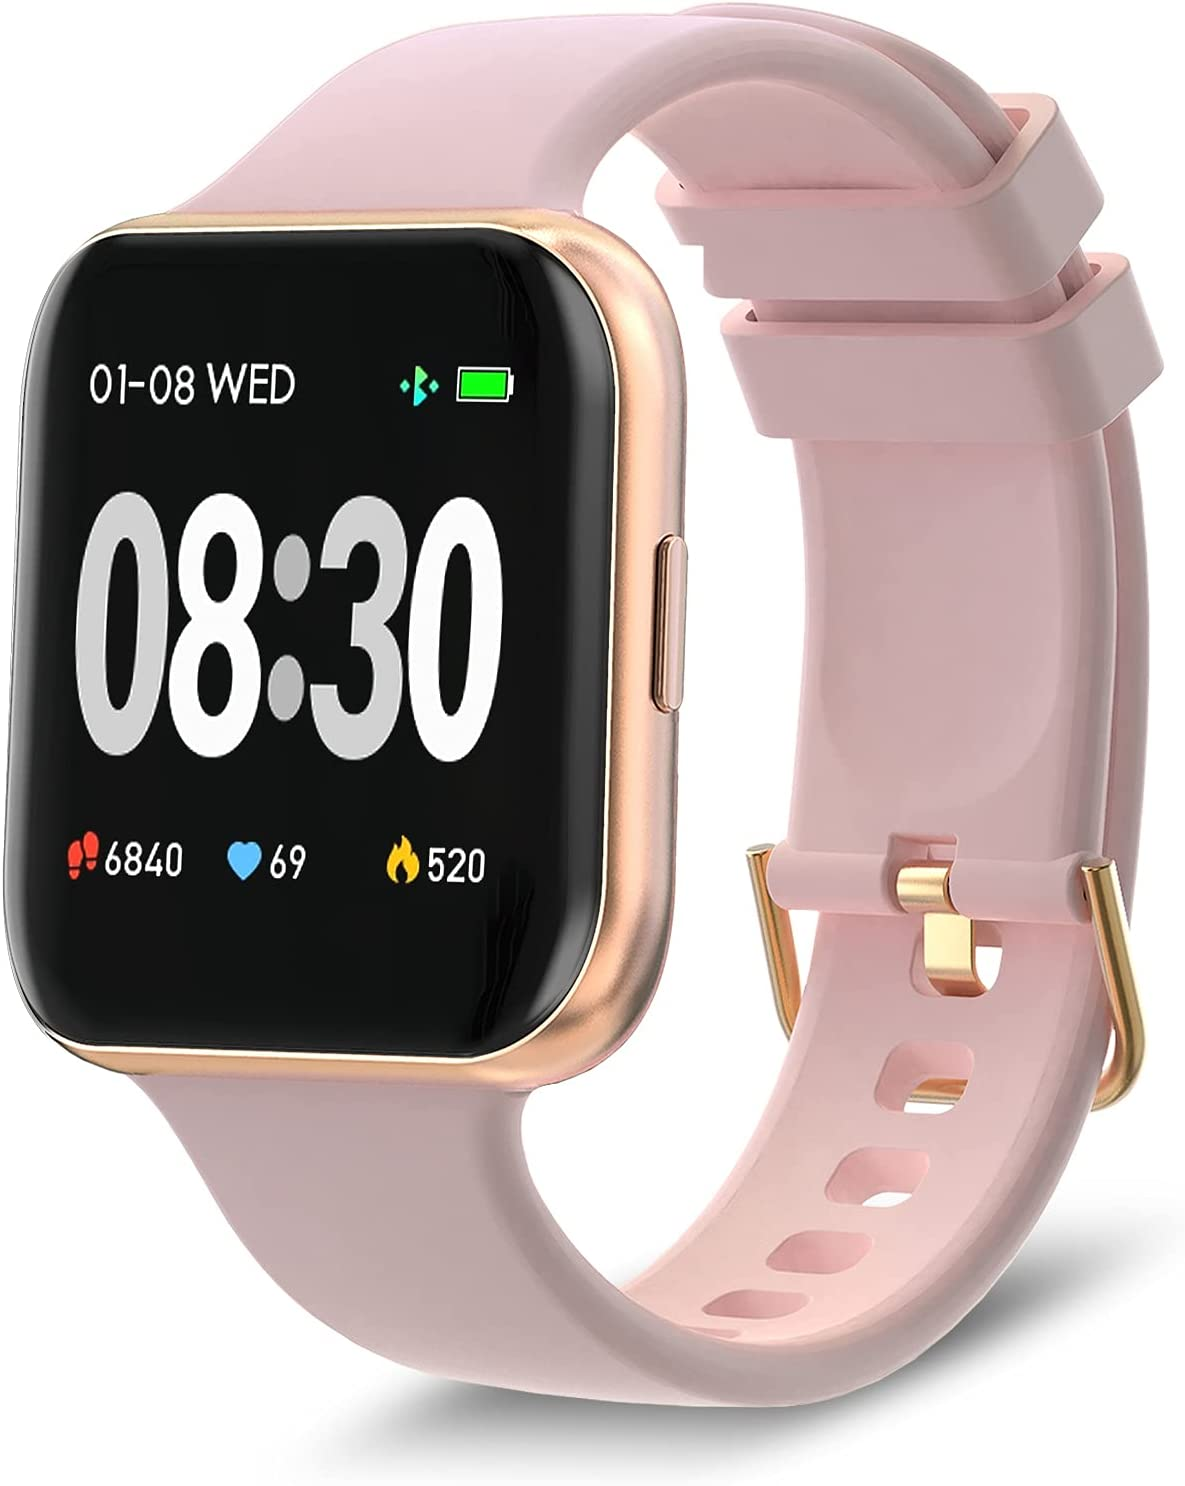 BRIBEJAT Smart Watch for Womens 39mm with 1.4 Inch Touchscreen Heart Rate Sleep Monitor Workout Metrics Call Message Alert Compatible with iPhone Samsung Android Phone Rose Gold